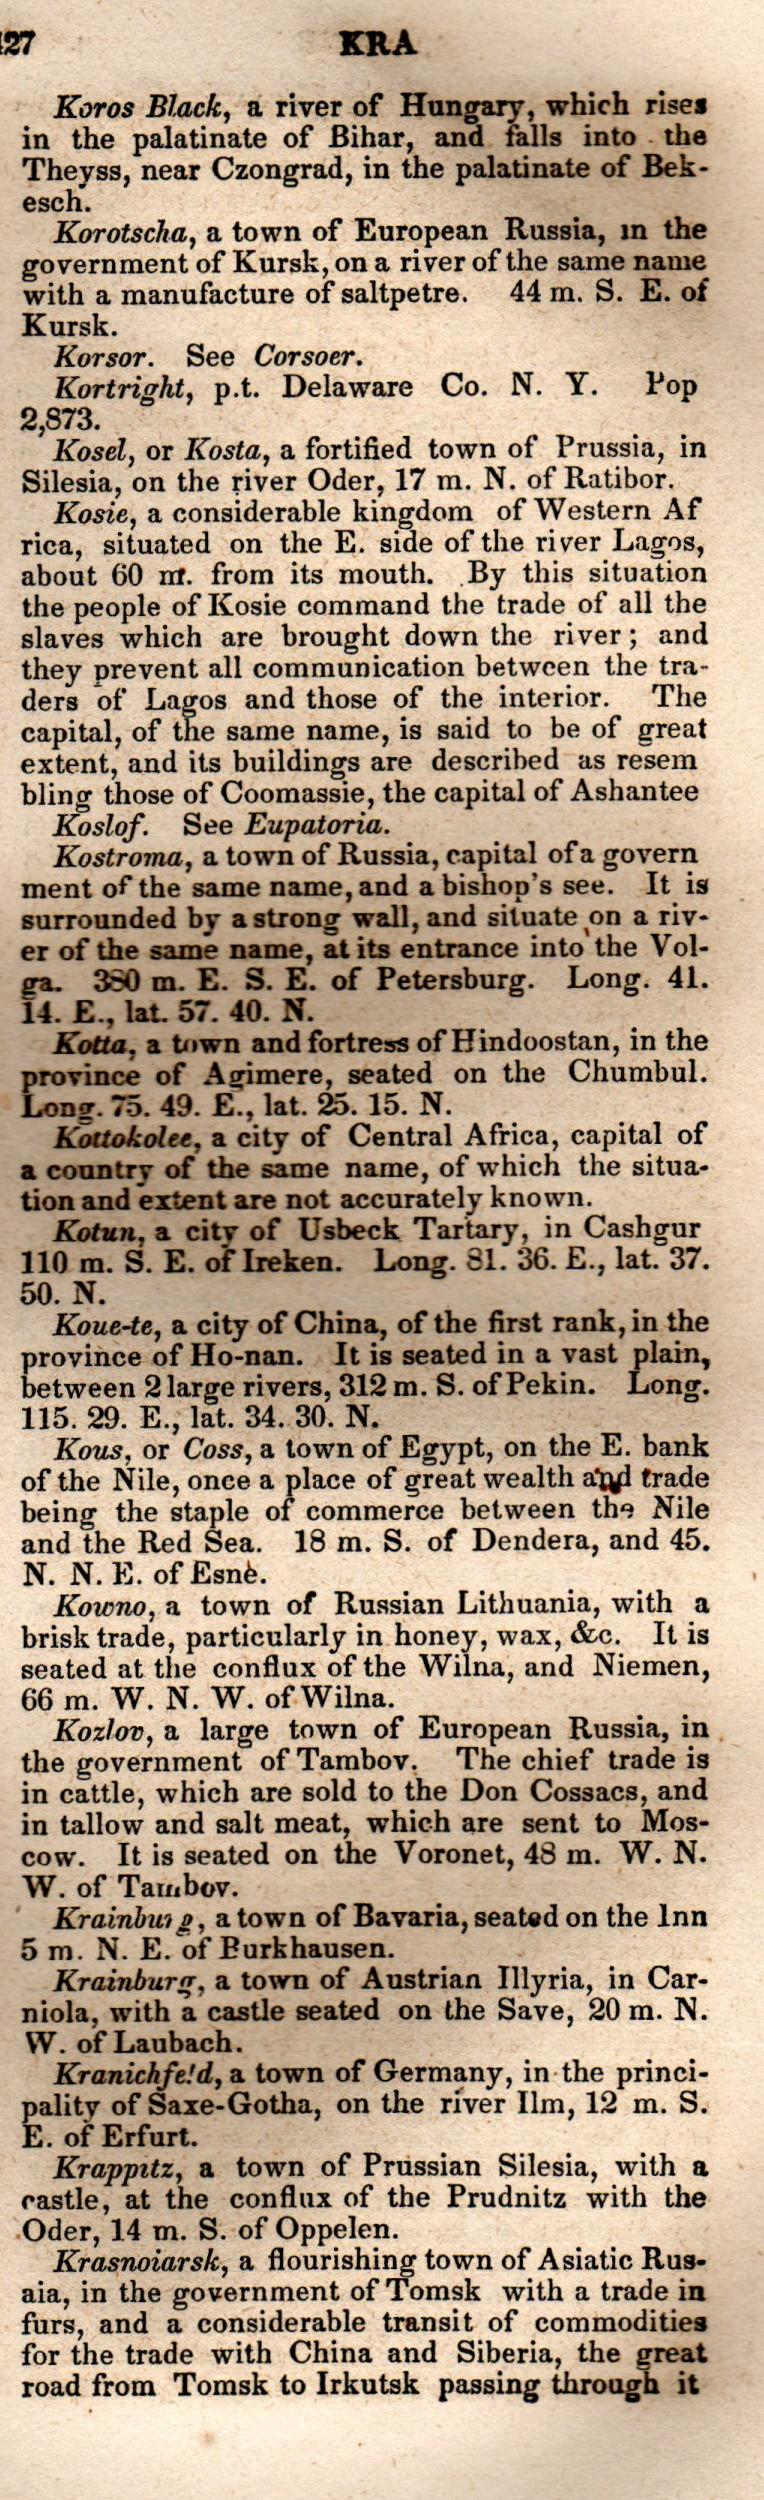 Brookes' Universal Gazetteer (1850), Page  427  Right Column